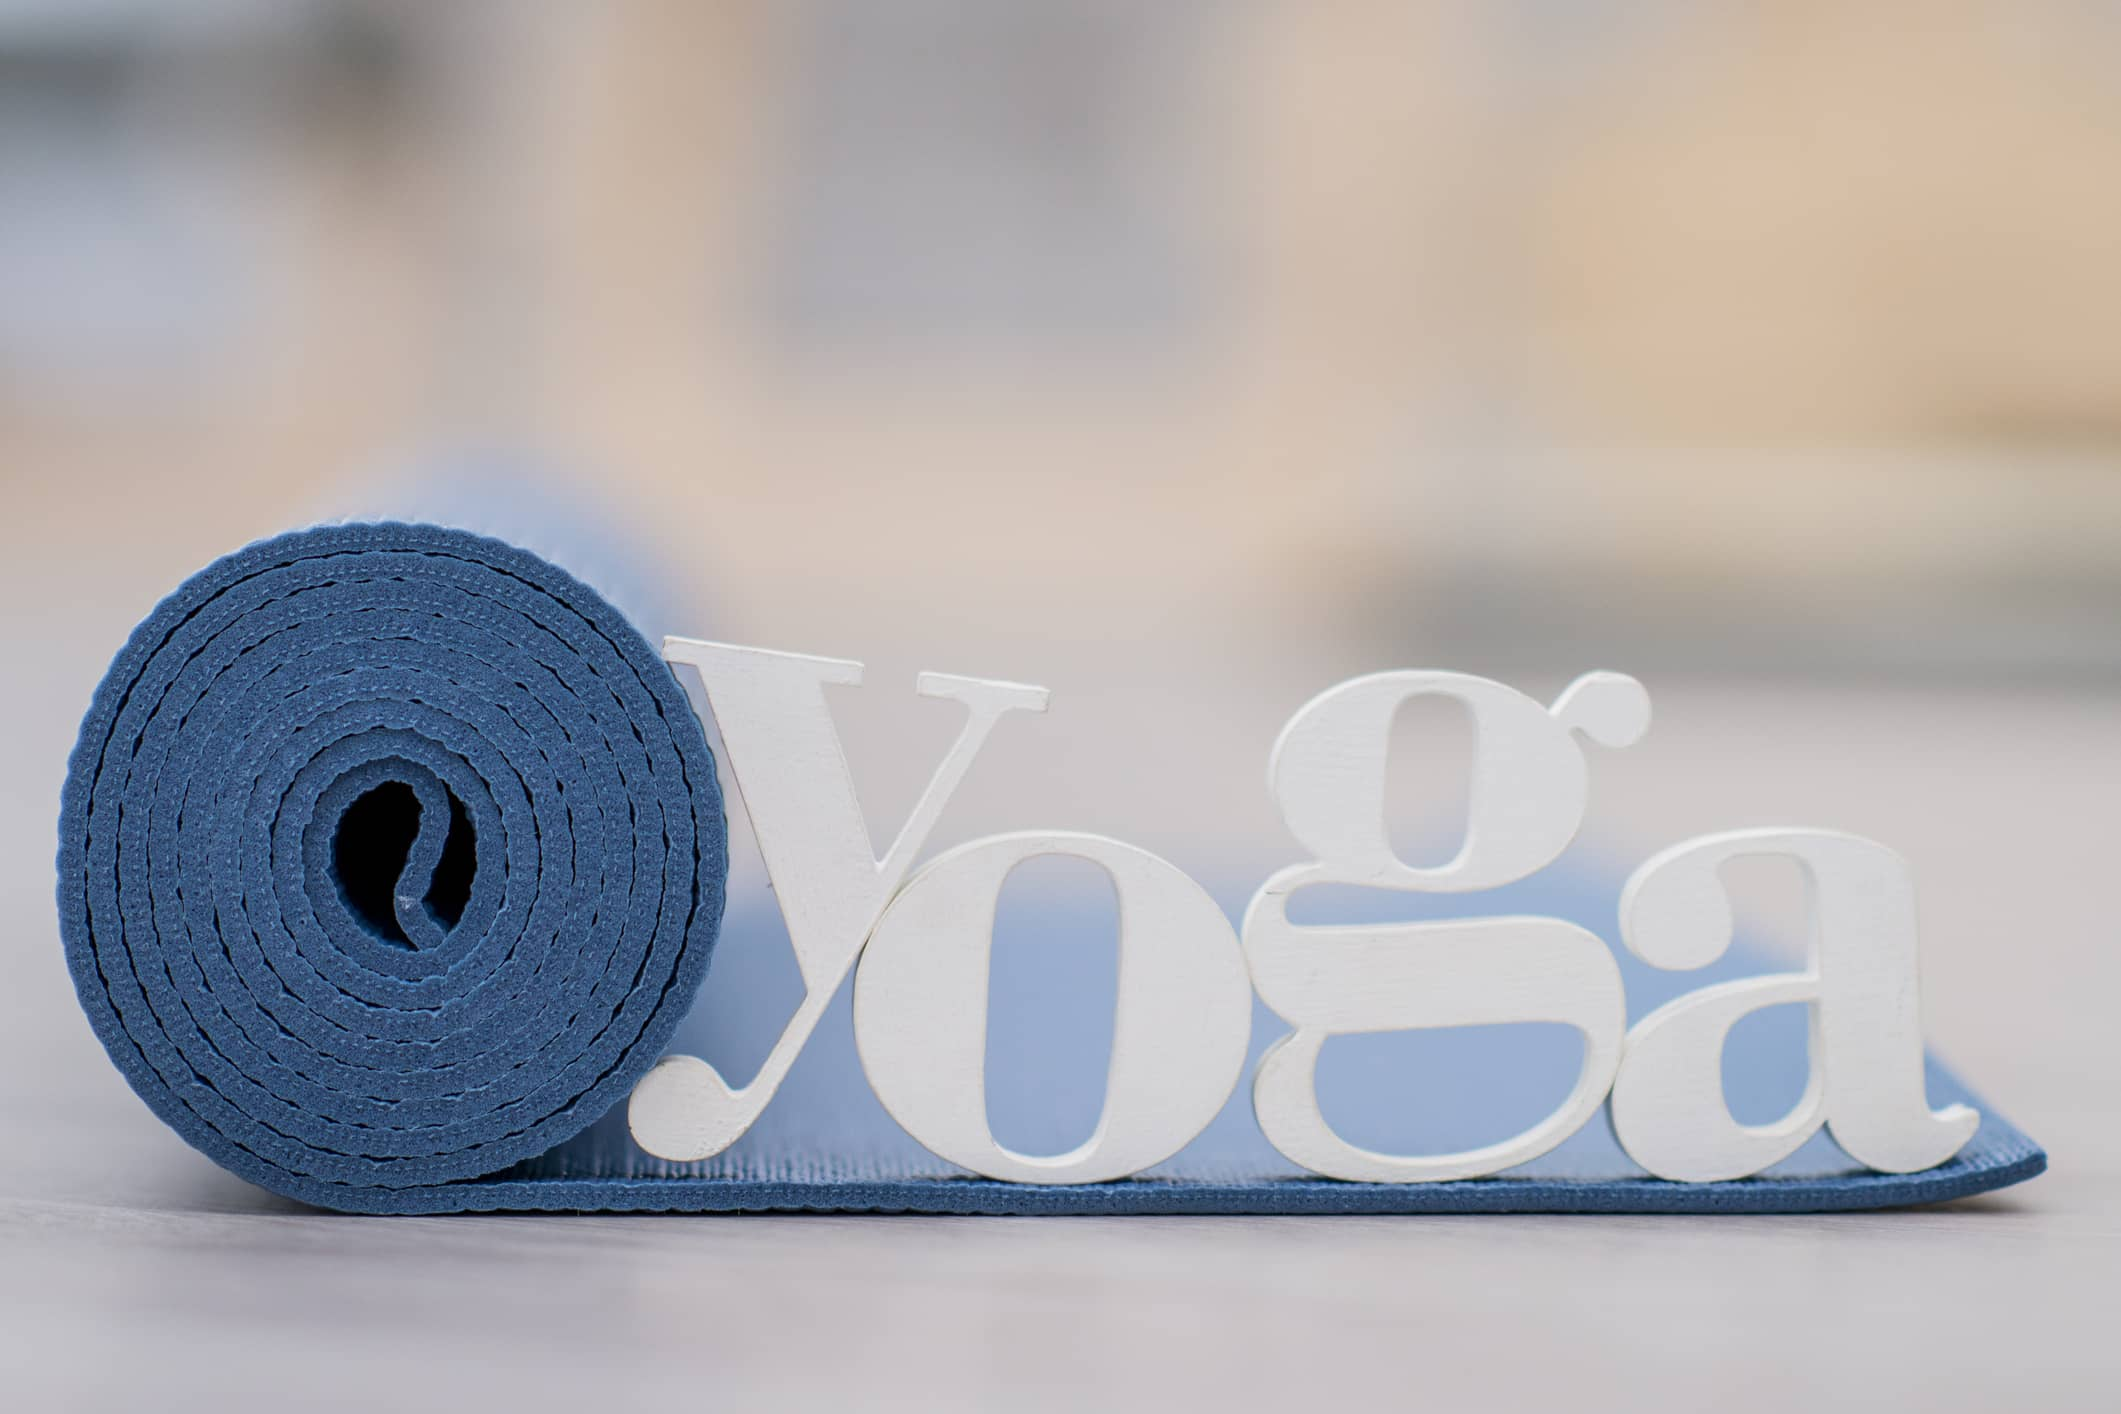 Yoga has been find to help relieve anxiety